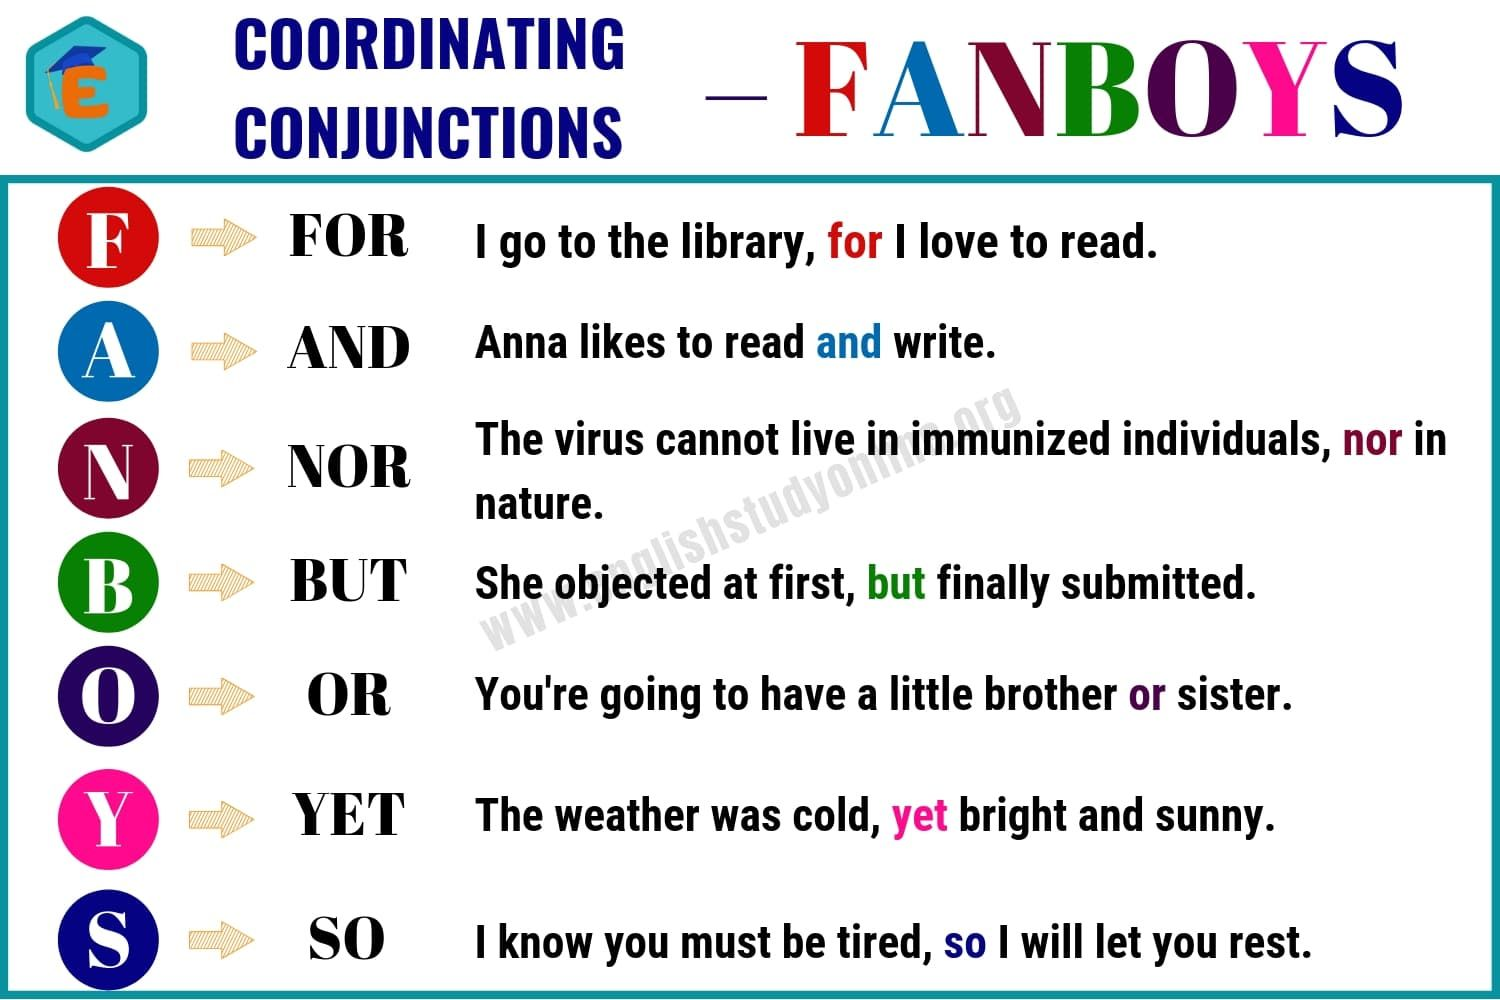 hight resolution of FANBOYS - 7 Helpful Coordinating Conjunctions with Examples - English Study  Online   Coordinating conjunctions